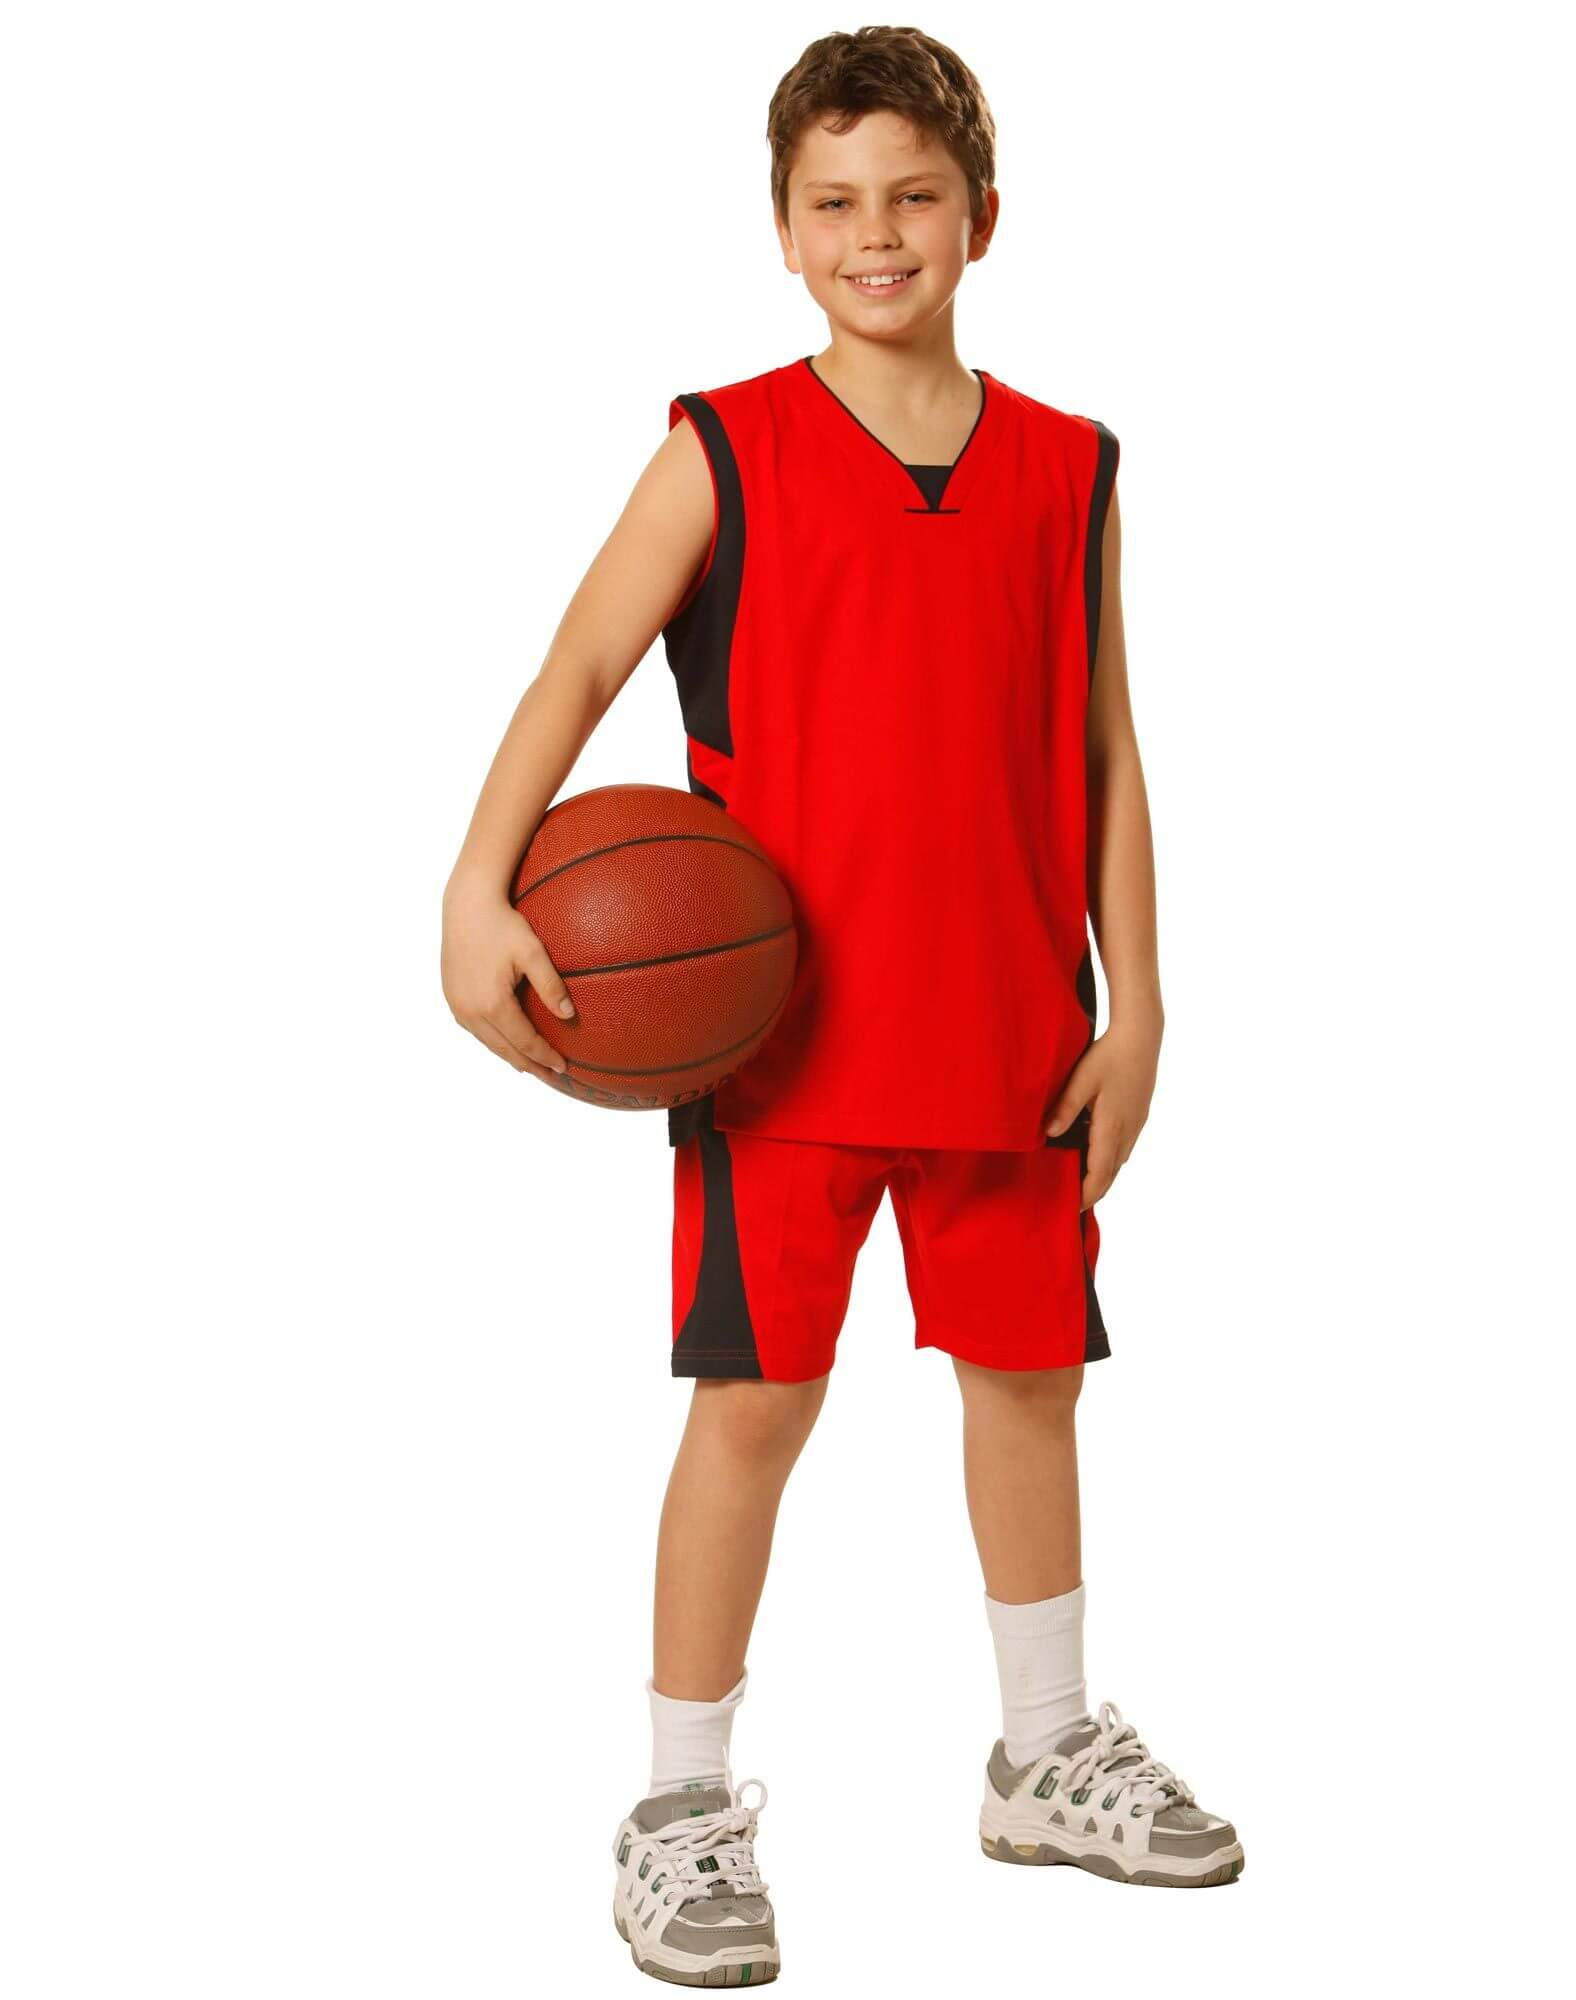 Kids Basketball Jerseys Manufacturers in Thailand